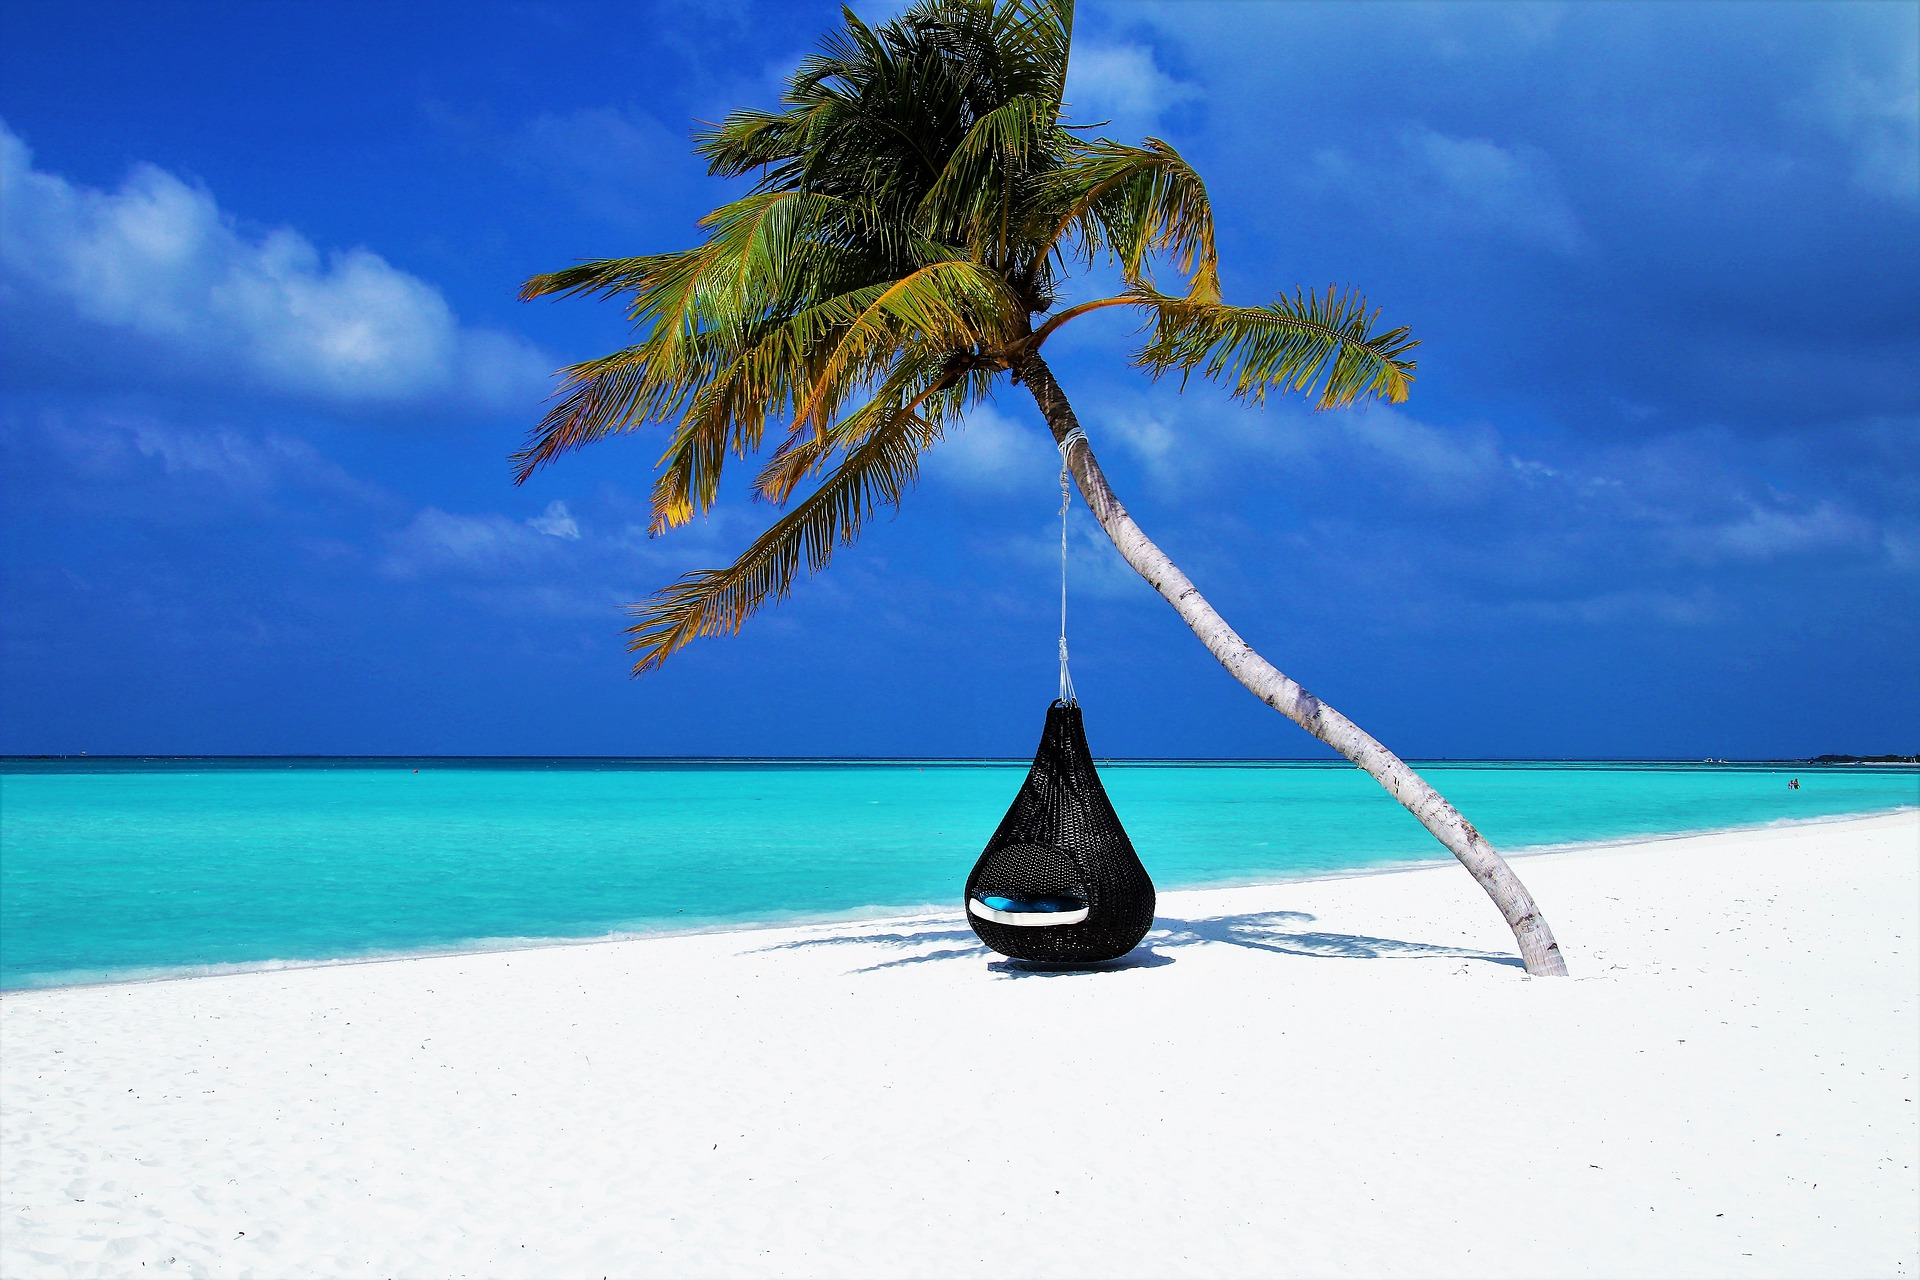 7 Steps to Keep Credit Cards Secure on Vacation